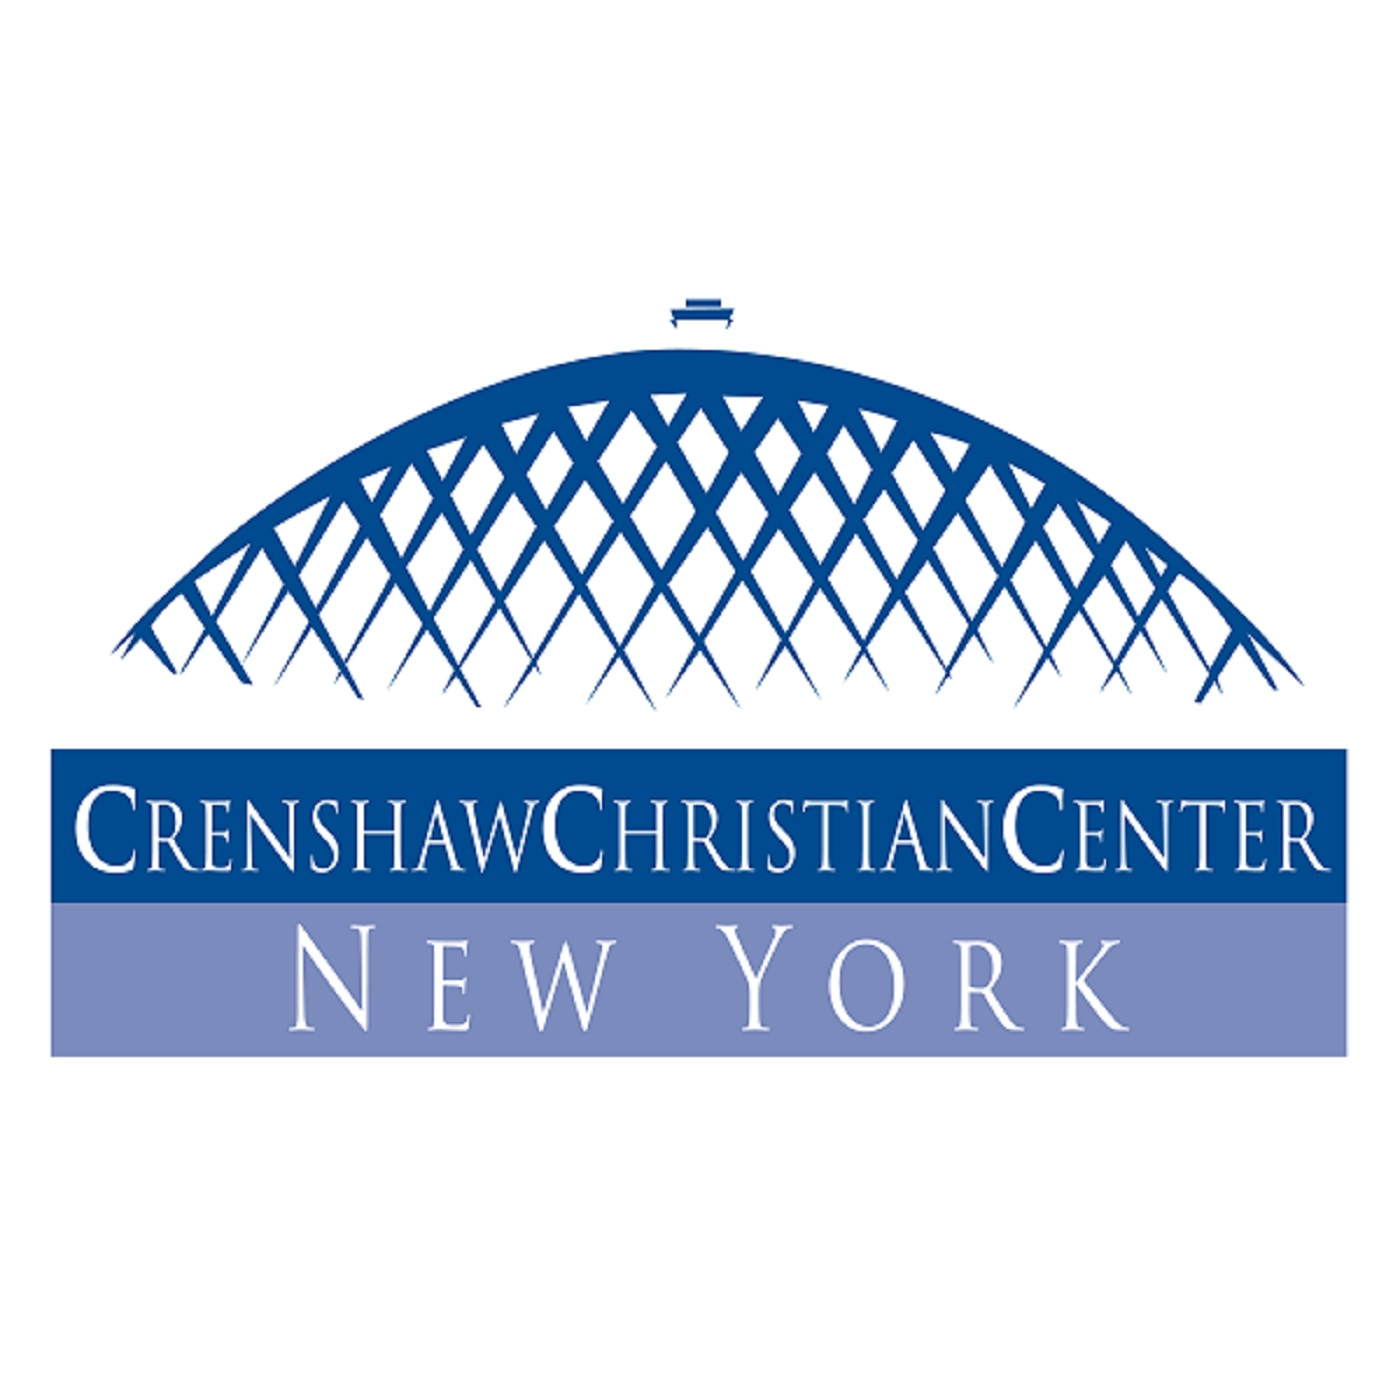 Crenshaw Christian Center New York